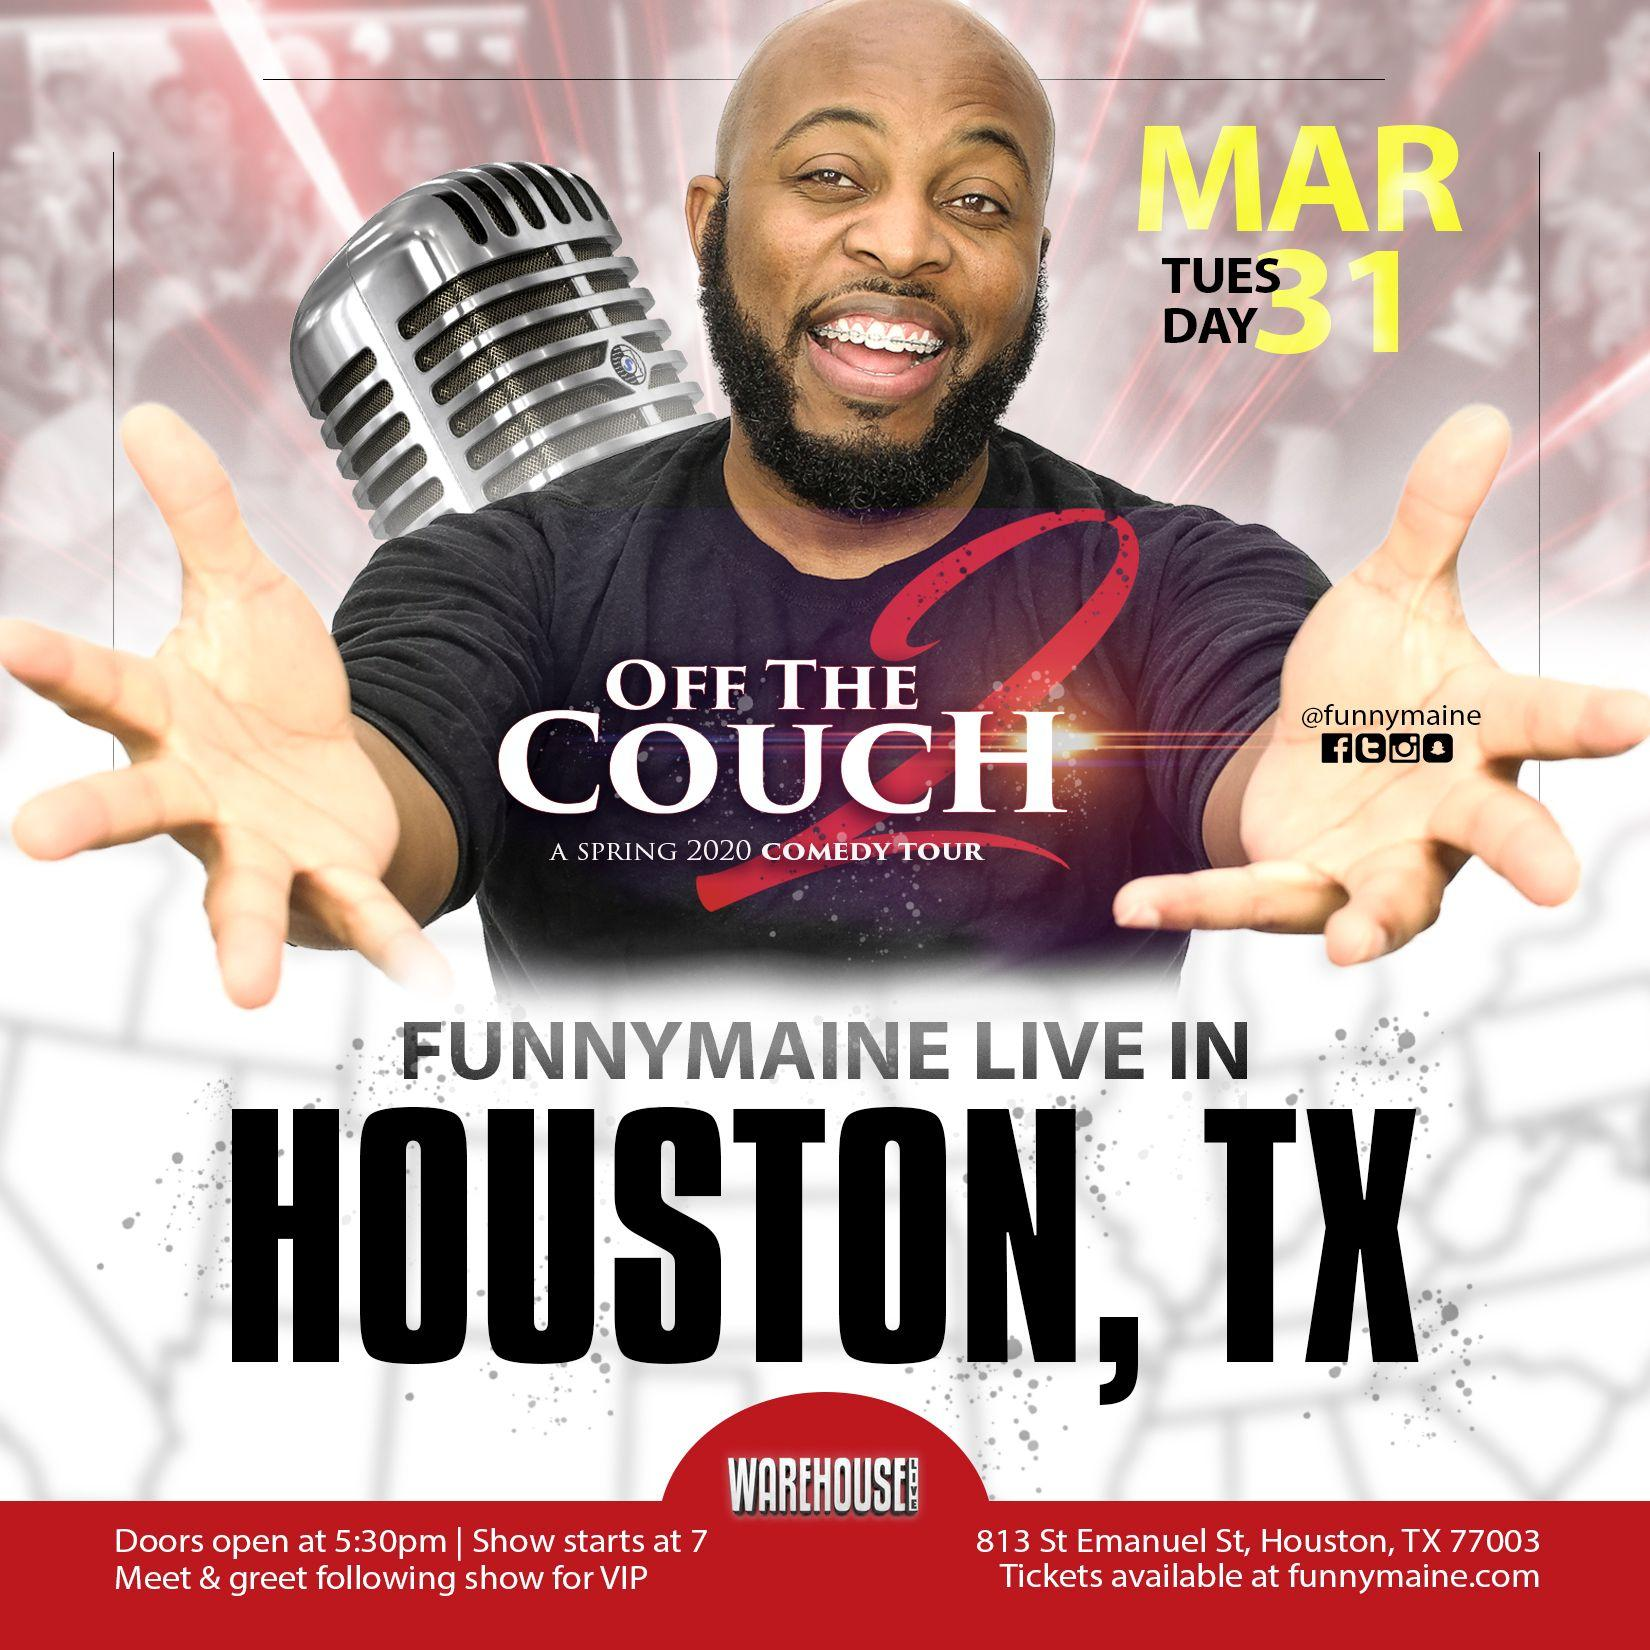 FUNNYMAINE'S OFF THE COUCH 2 TOUR - LIVE IN HOUSTON